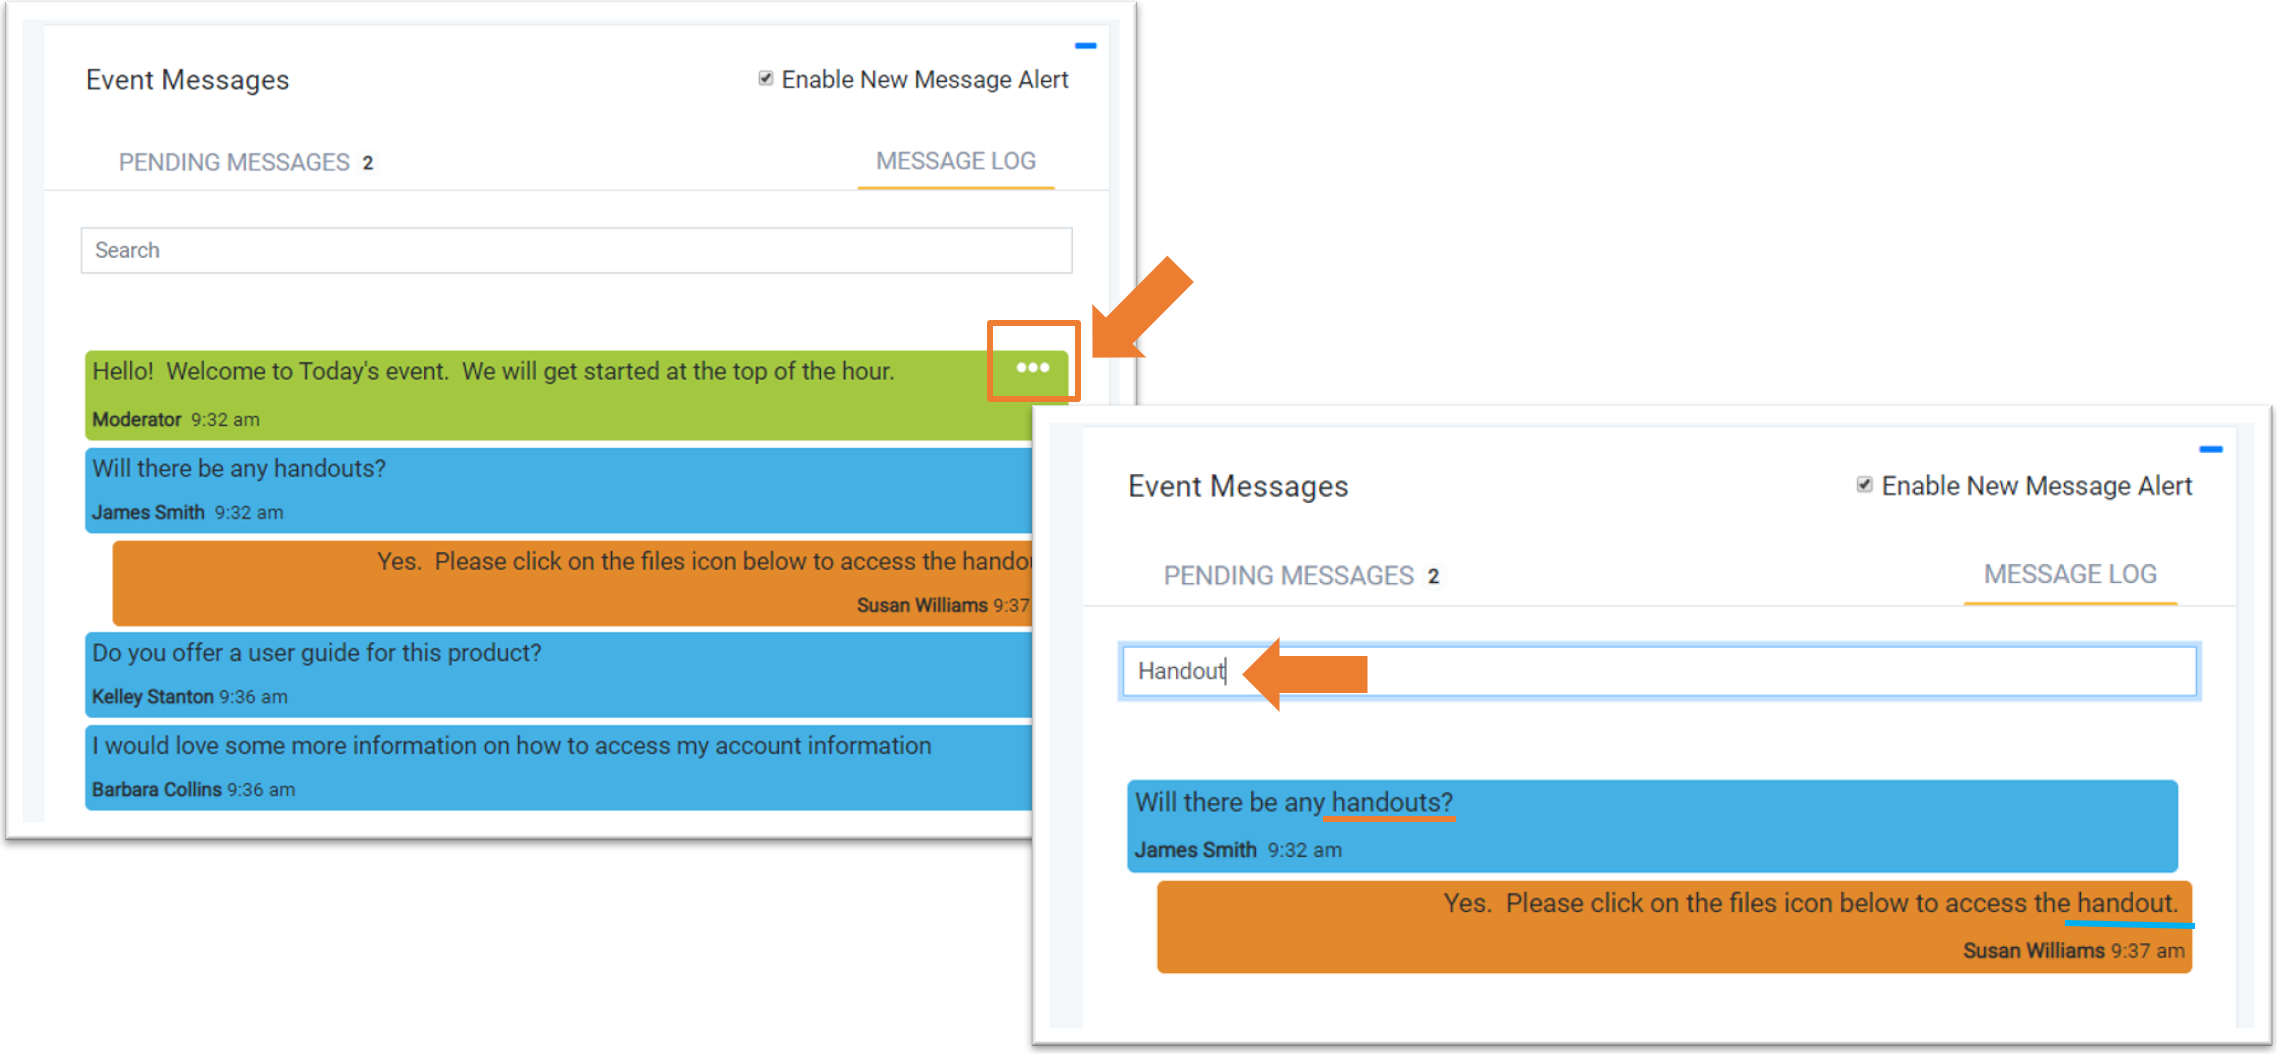 Screenshot: Search event messages function with three dots highlighted in one image and search field in another.